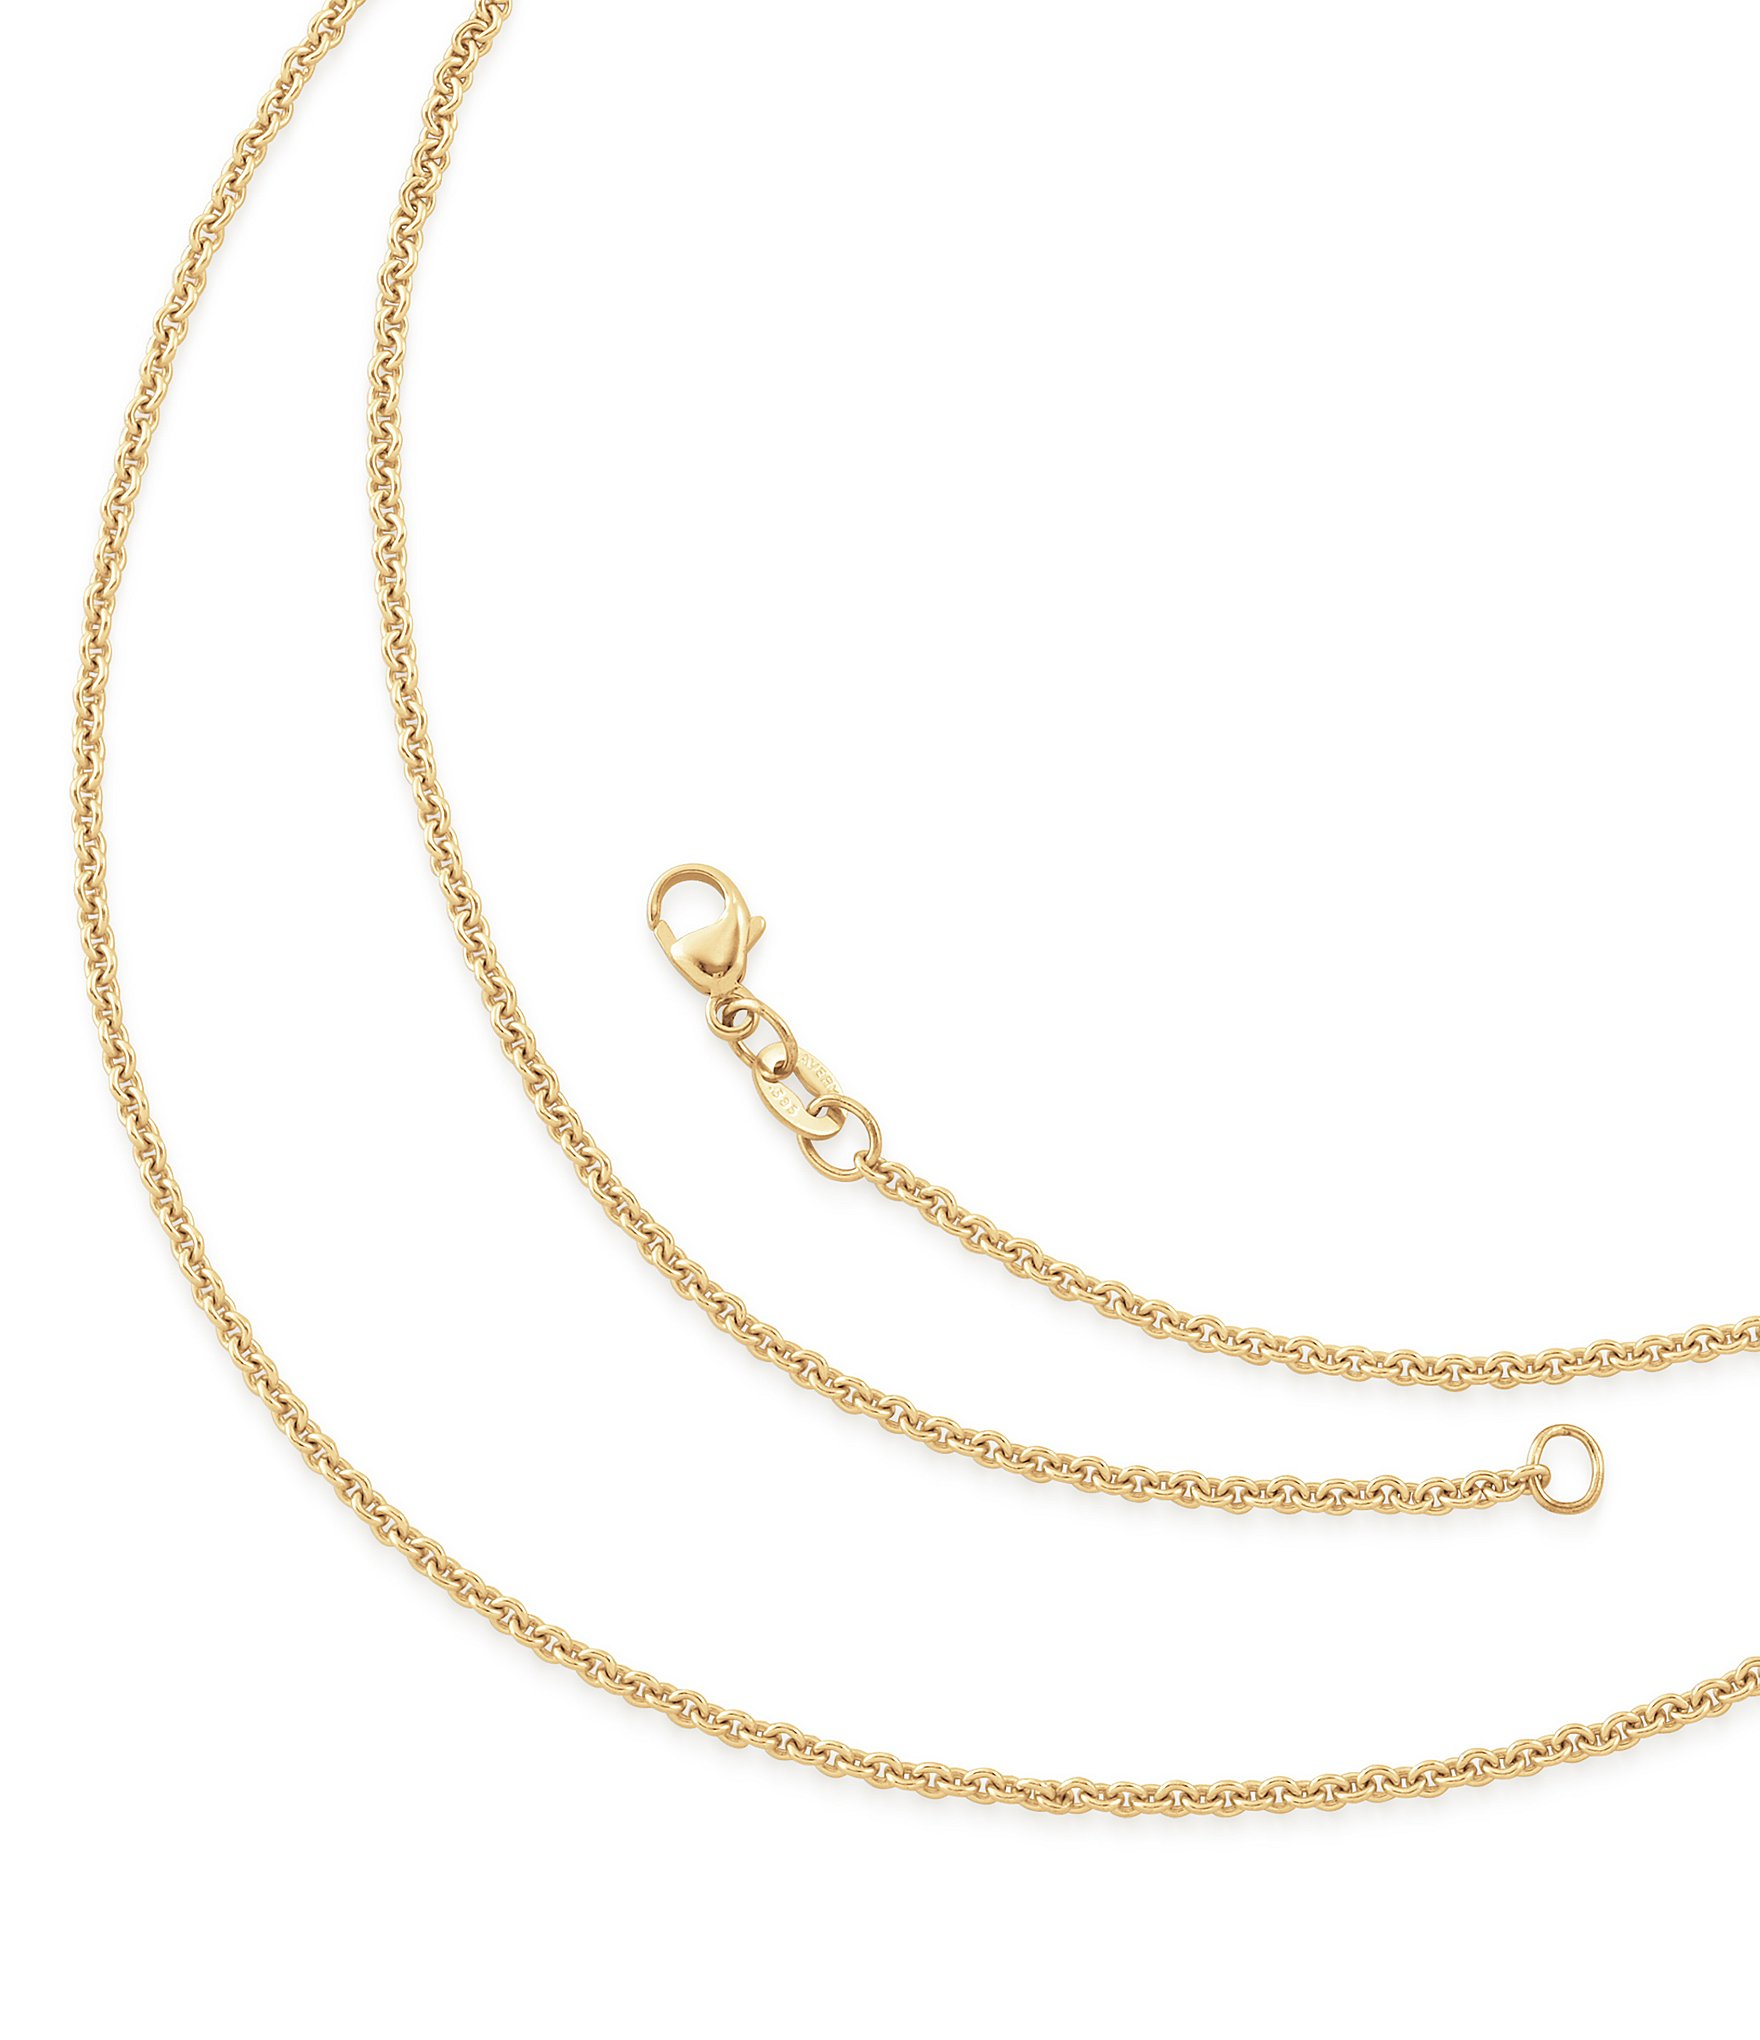 James Avery Light Cable Chain Pertaining To Most Popular Cable Chain Necklaces (View 8 of 25)